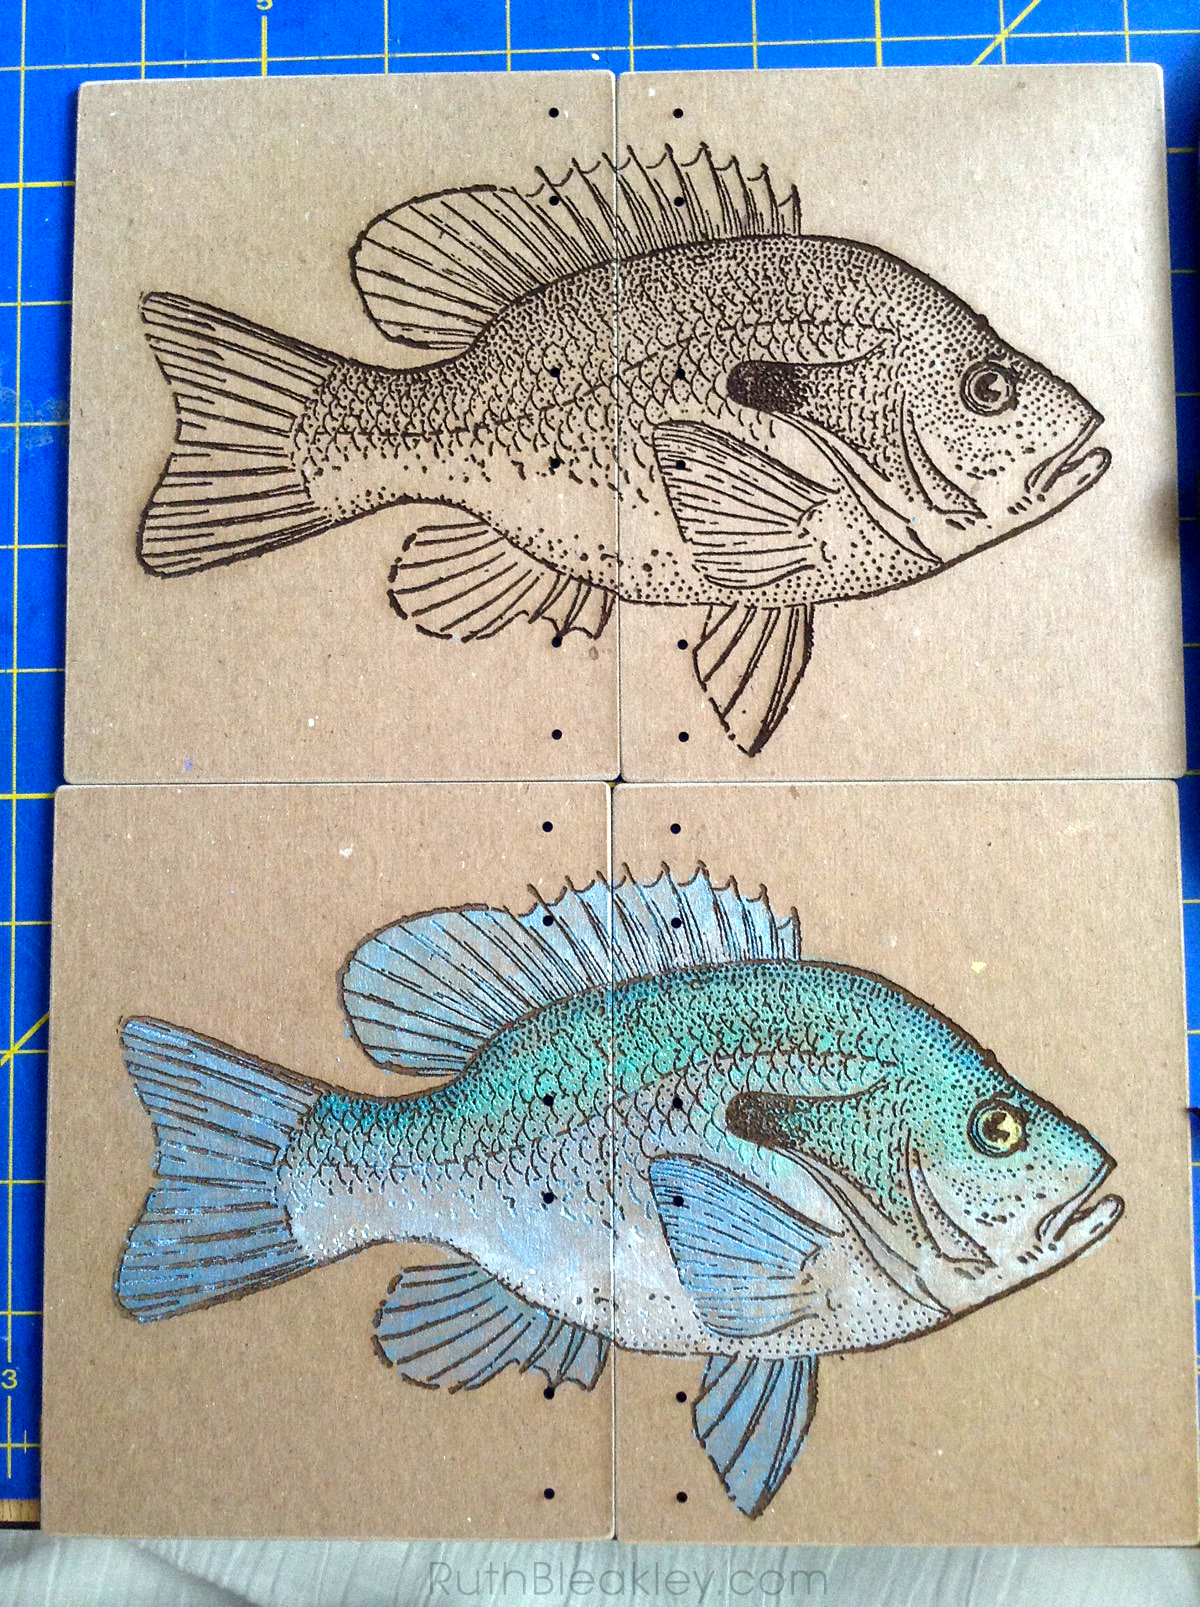 Hand Painted Fish Journal by book artist Ruth Bleakley - before and after